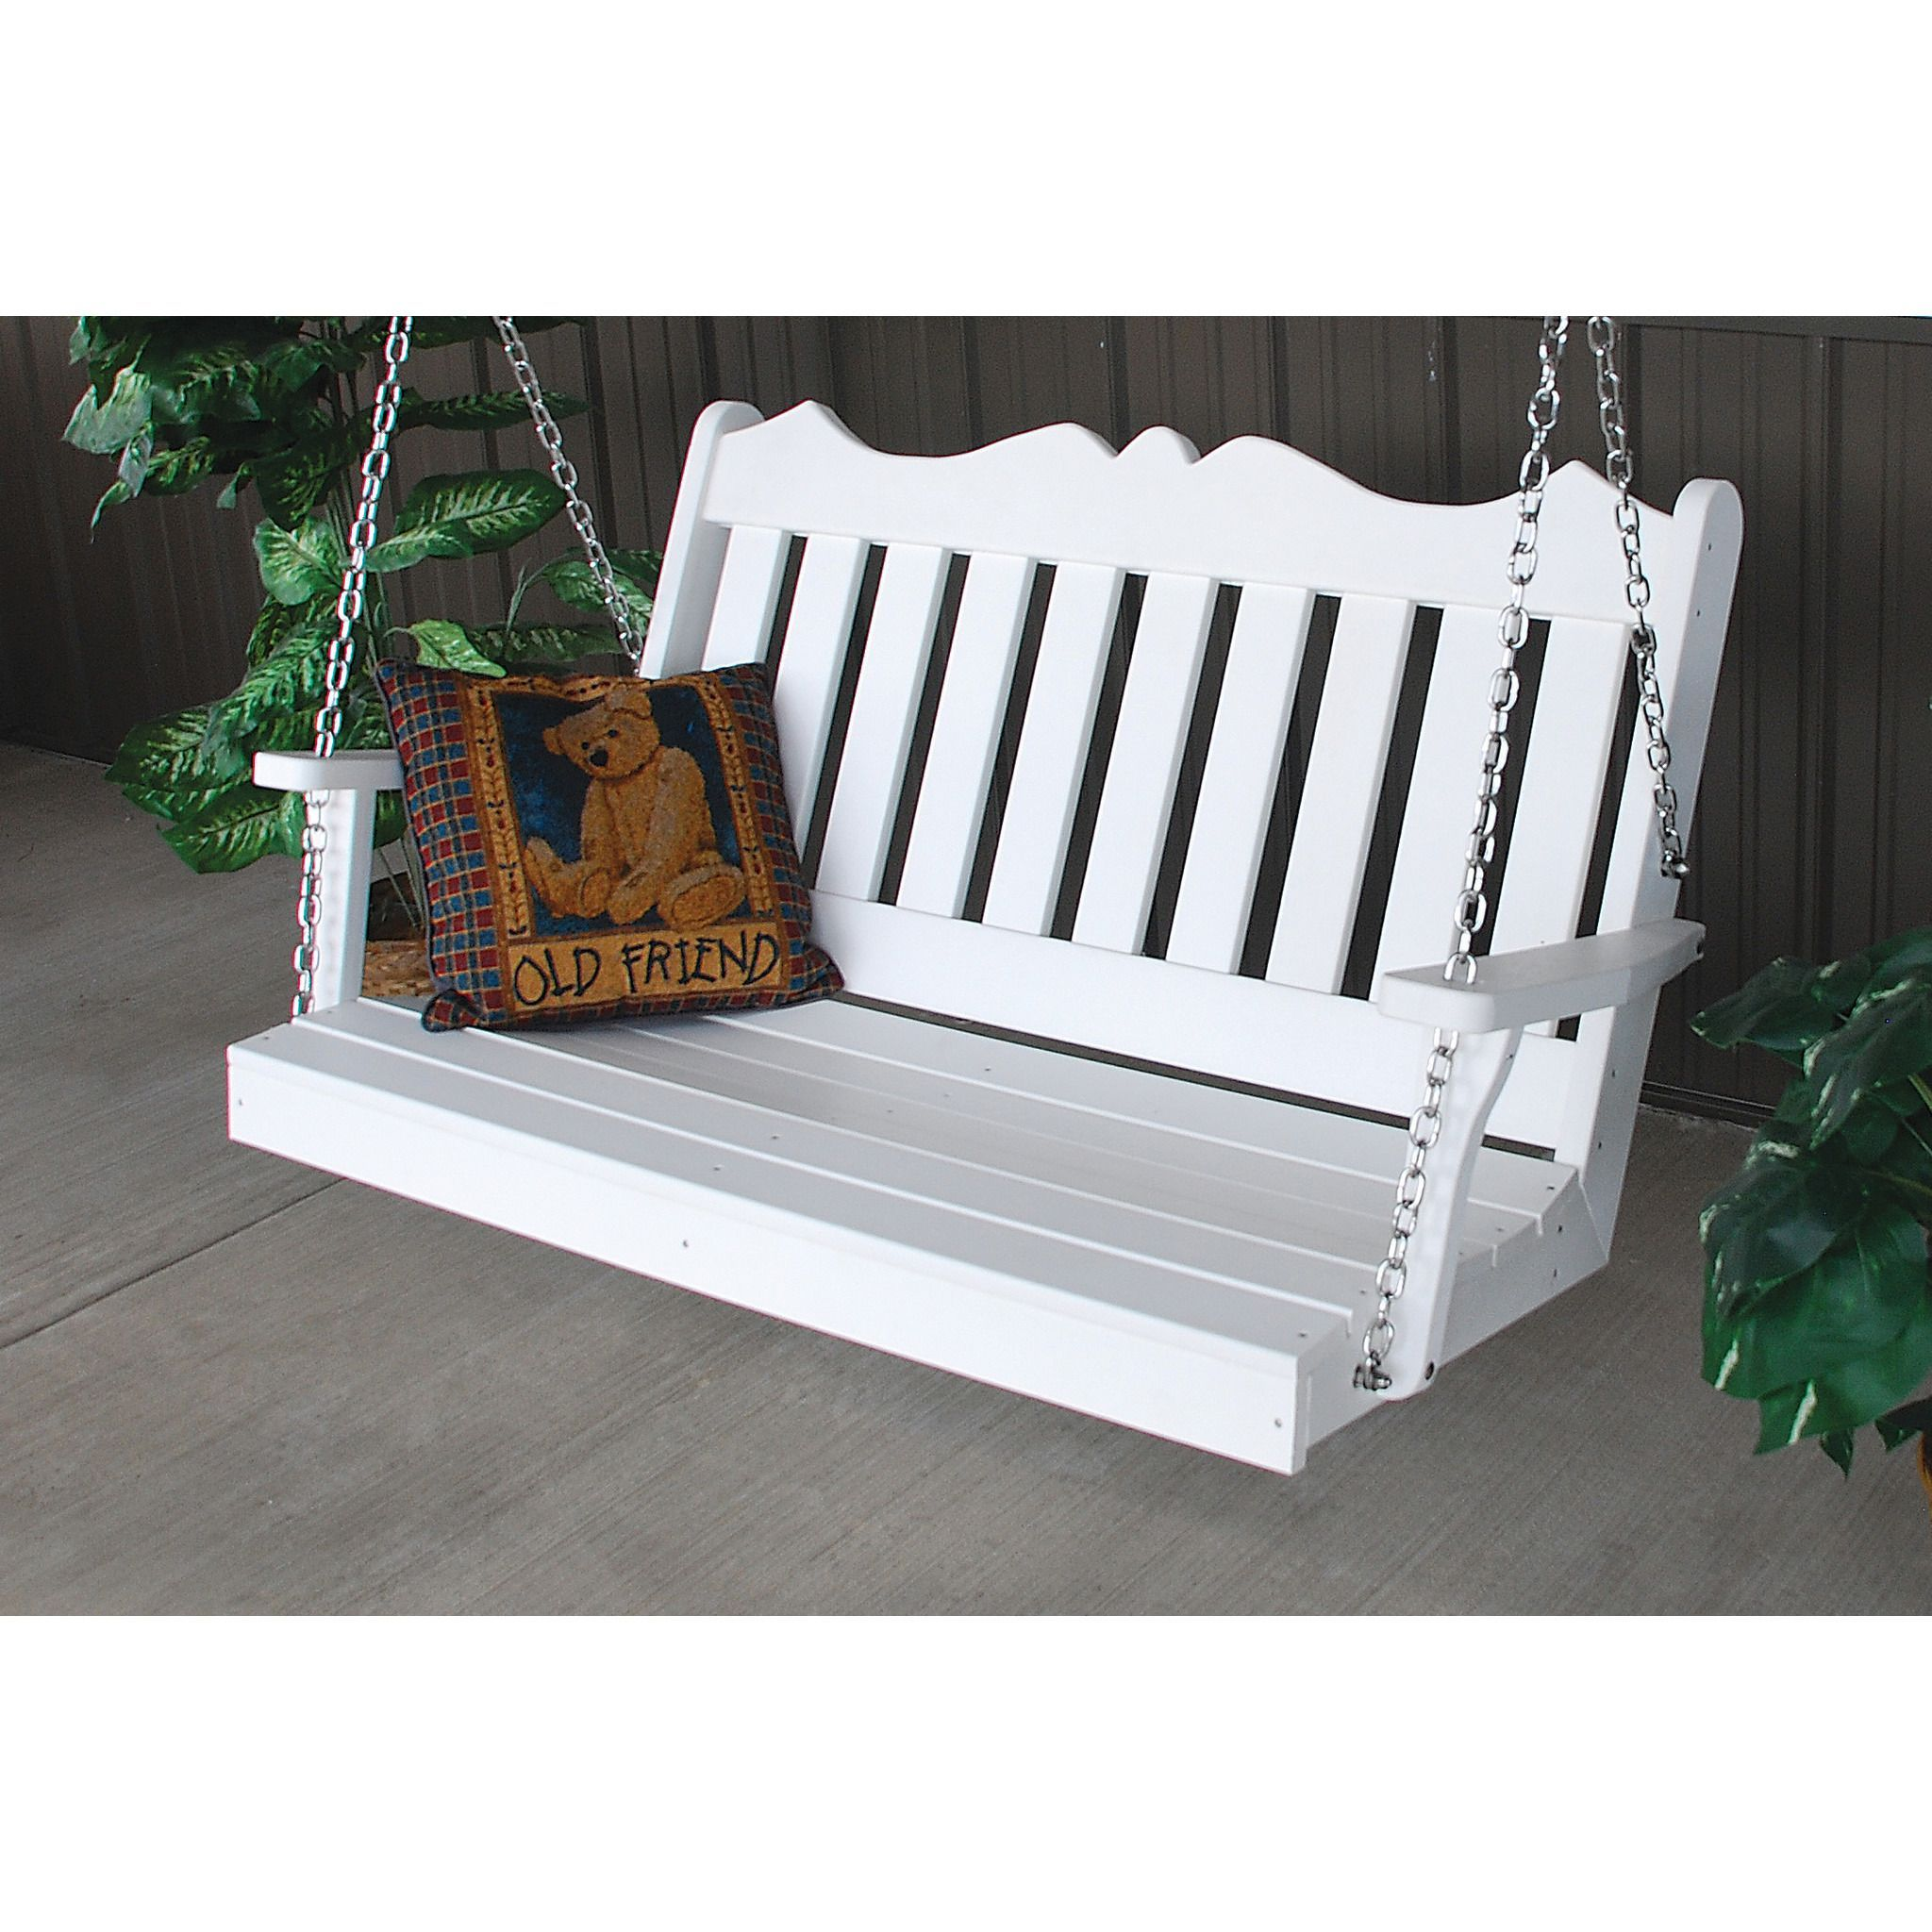 Au0026L Furniture Company Royal English Recycled Plastic 4ft Porch Swing